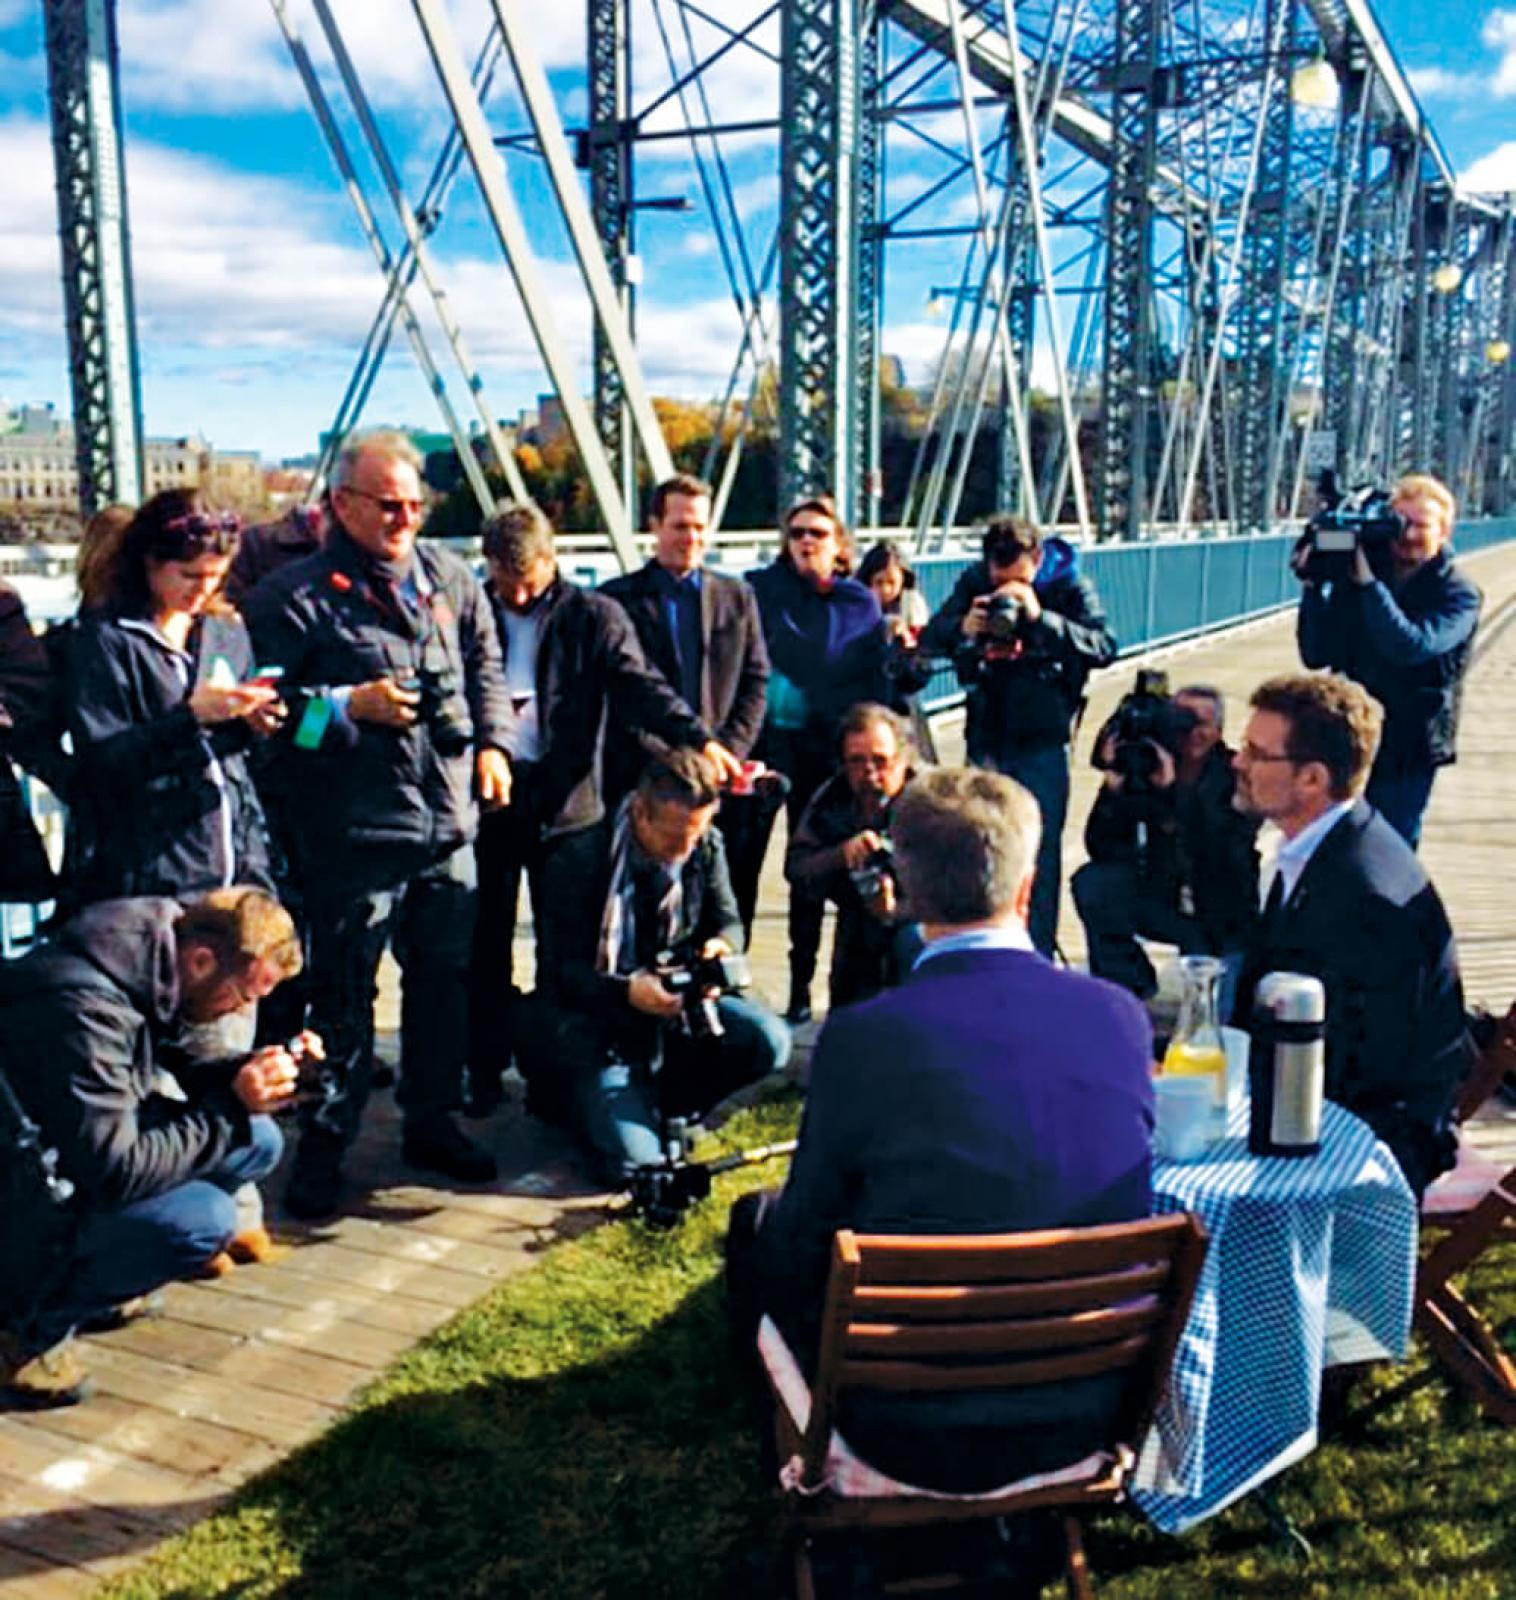 Picnic on the Bridge, complete with sod, was announced  at a media event.